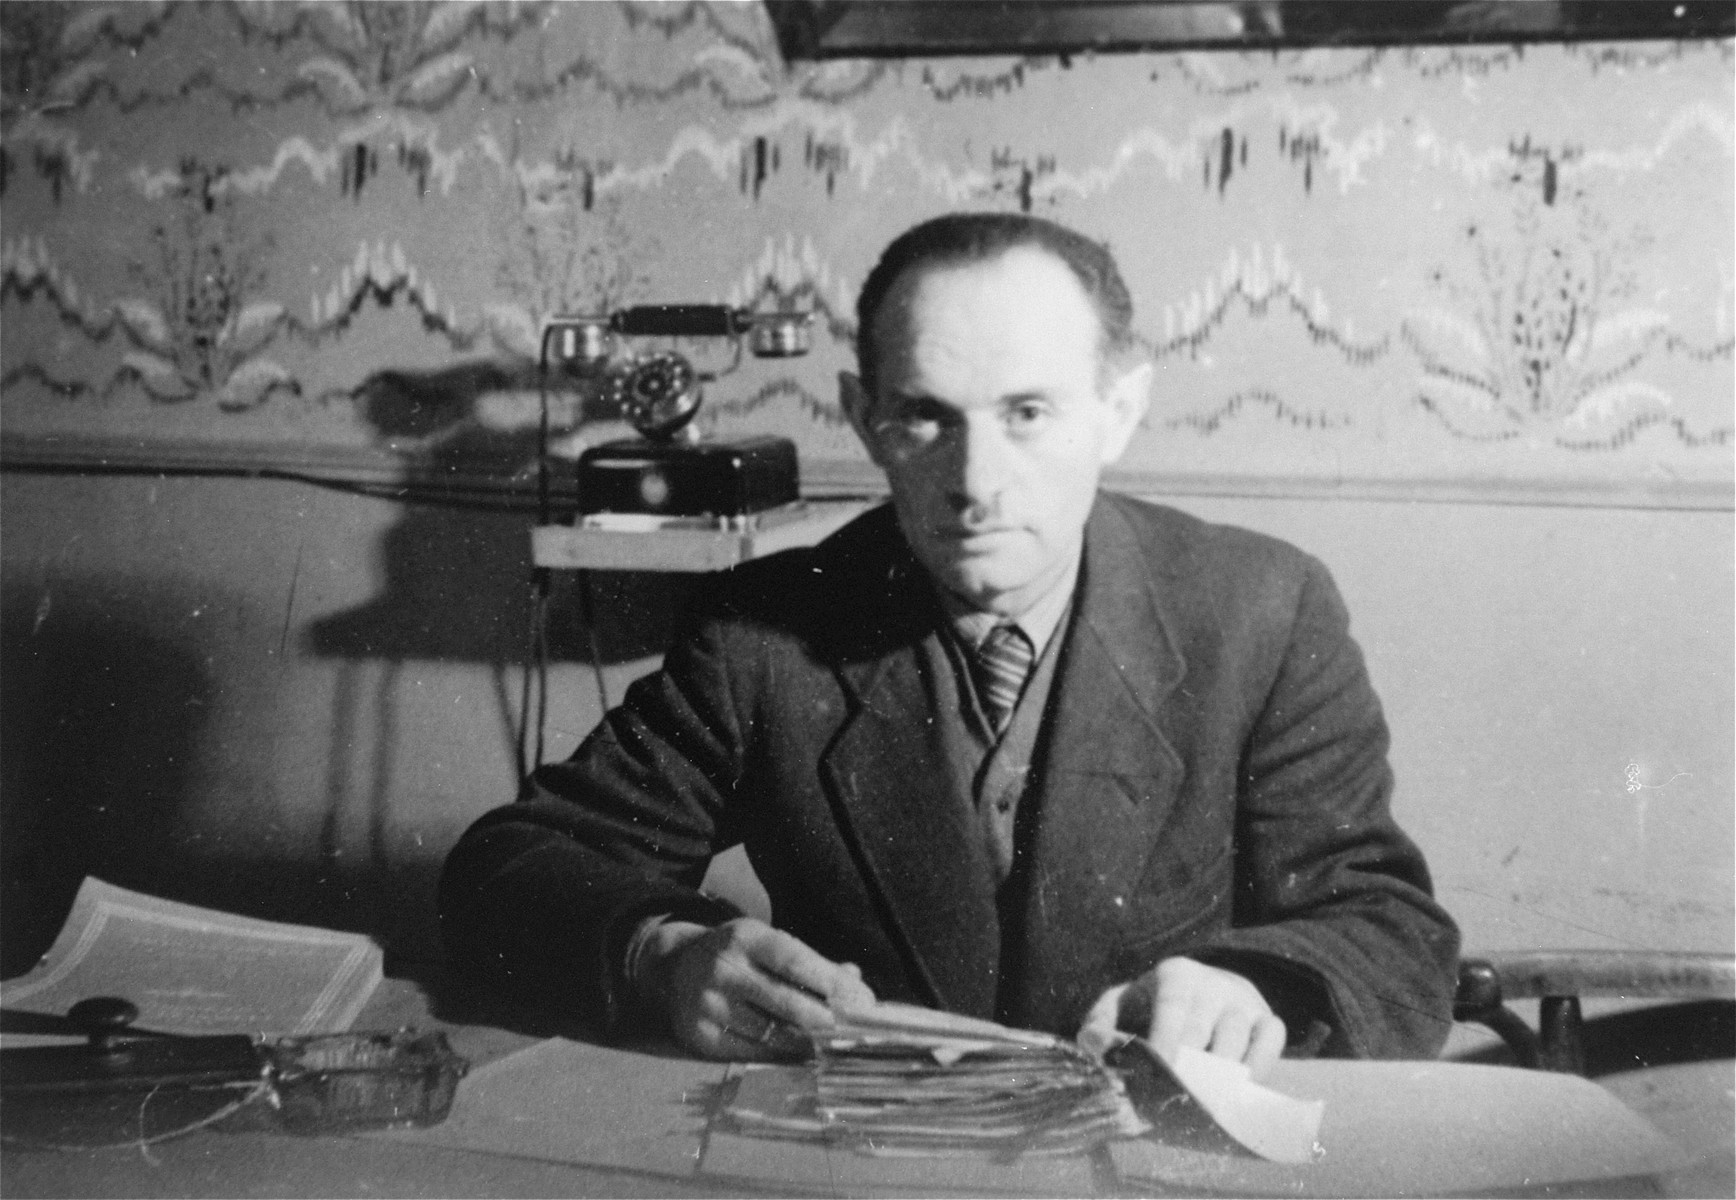 A member of the ghetto administration sits at a desk in the office of the Judenrat in the Kielce ghetto.  This photo was one the images included in an official album prepared by the Judenrat of the Kielce ghetto in 1942.